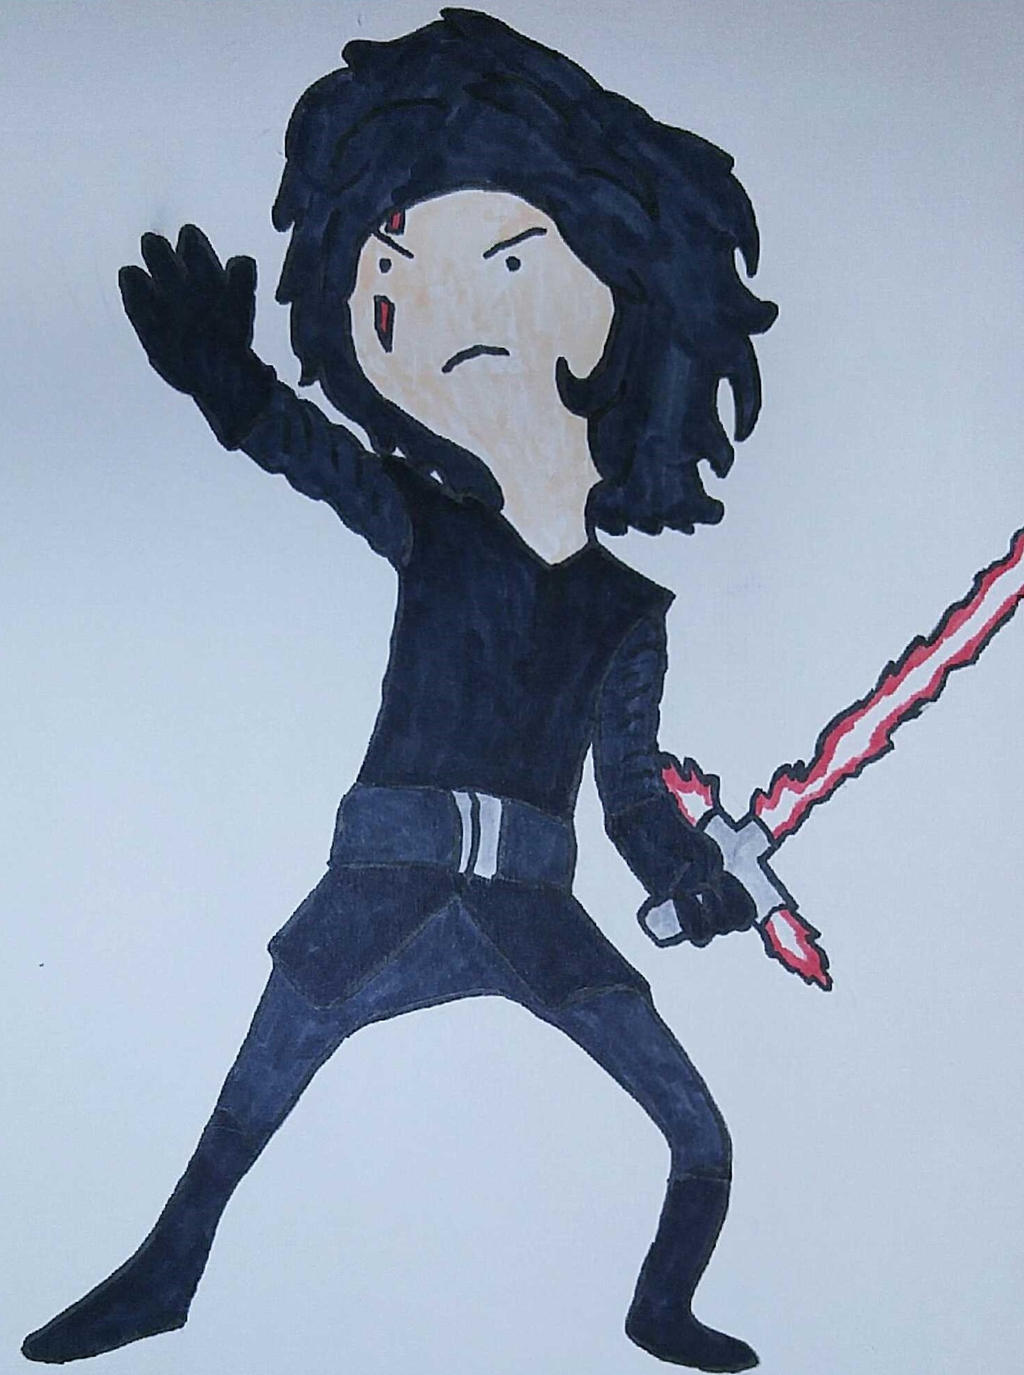 Kylo Ren in adventure time style by Ncid